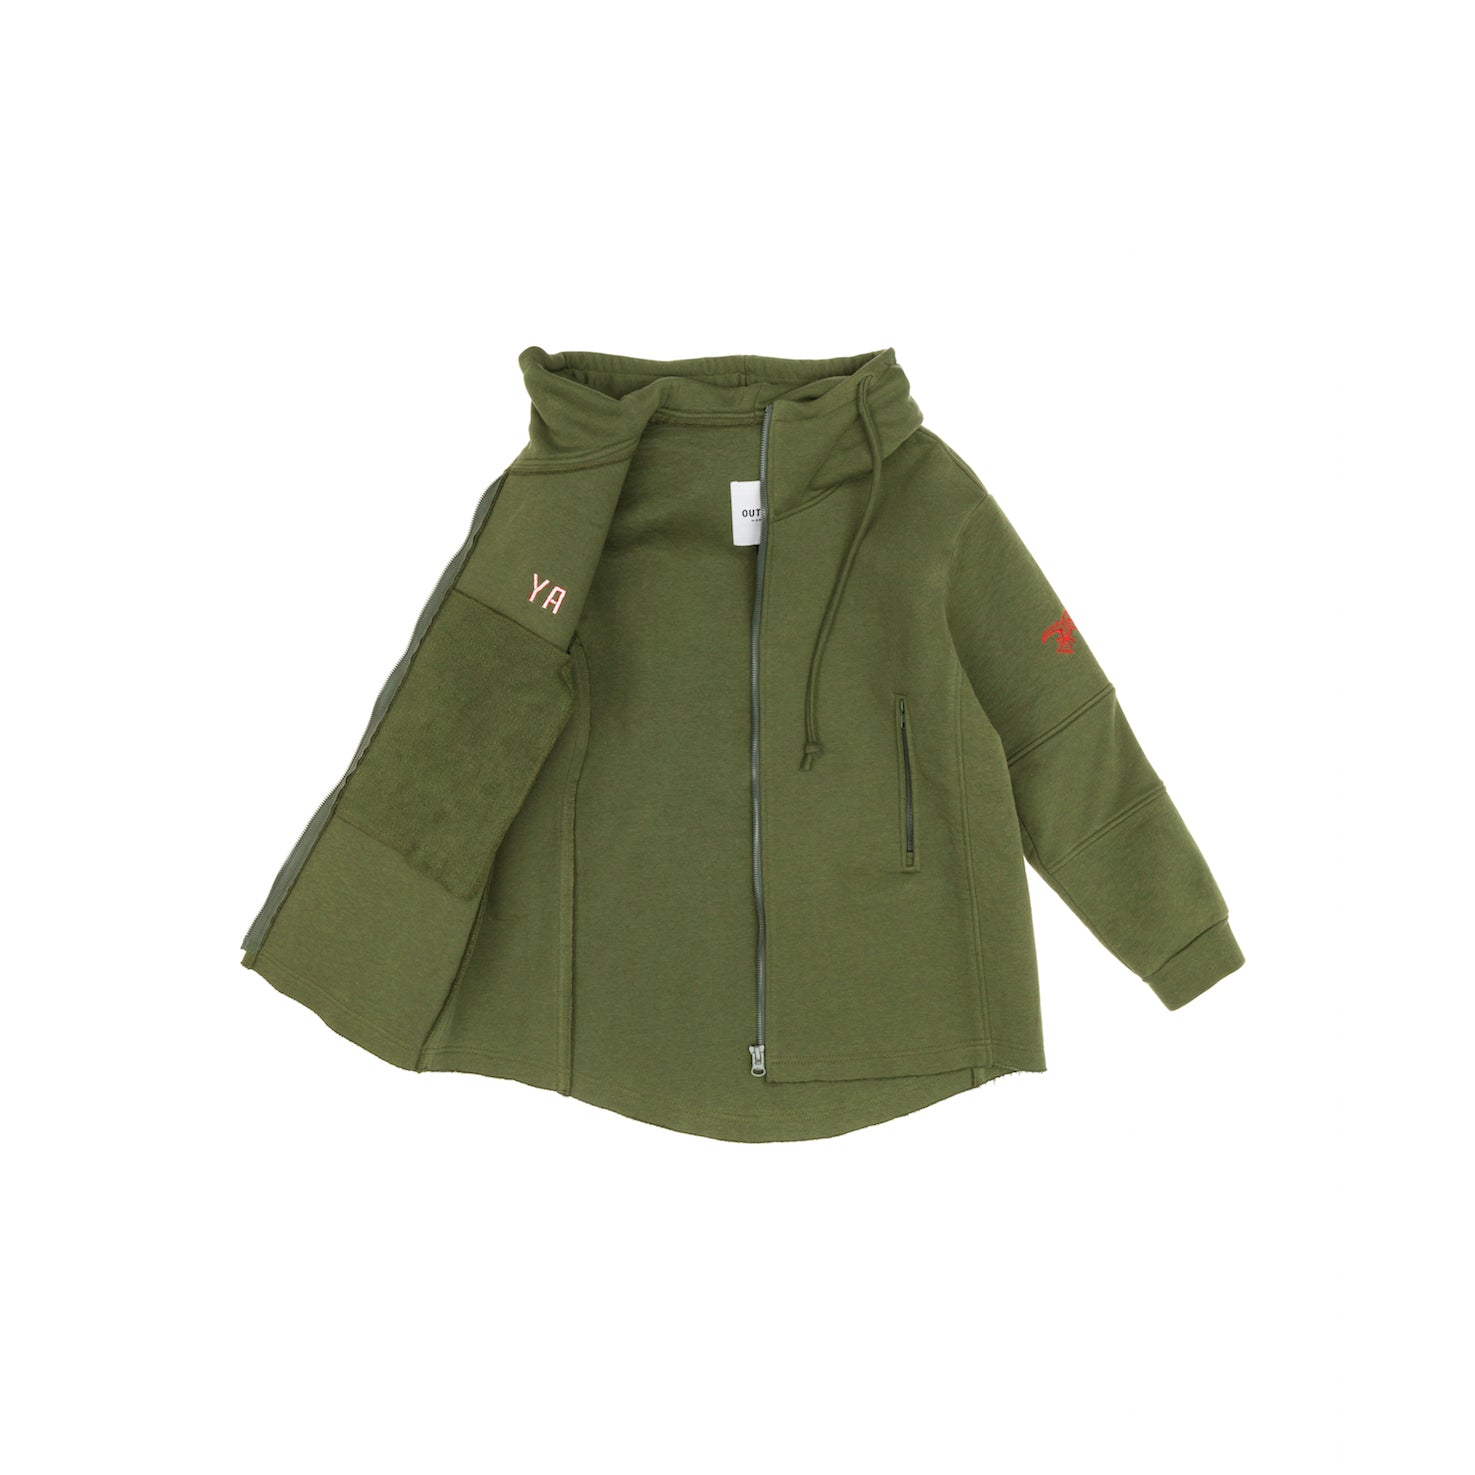 Water/Wind Resistant Jacket